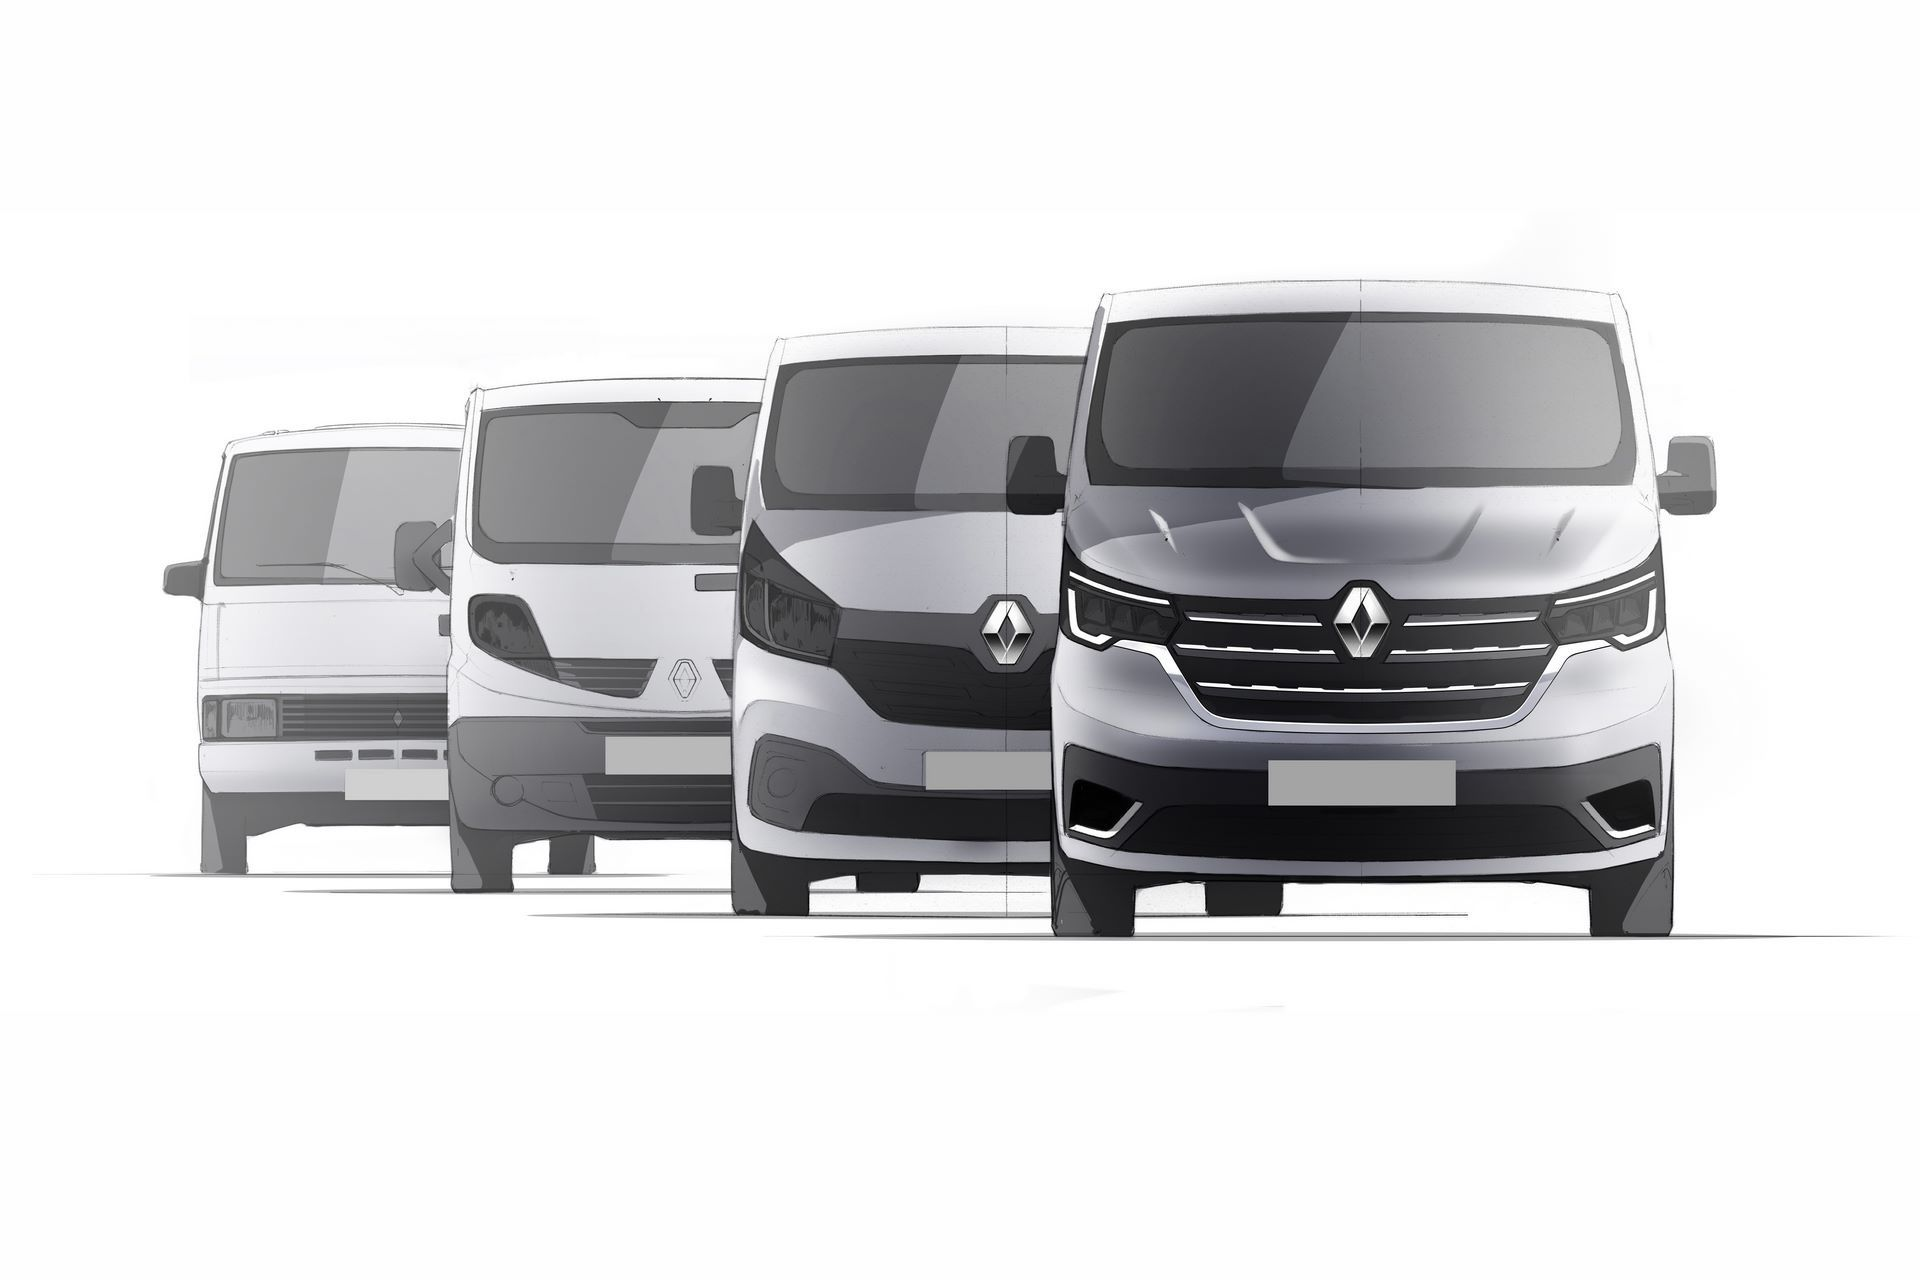 12-2020-DESIGN-CREATION-OF-NEW-RENAULT-TRAFIC